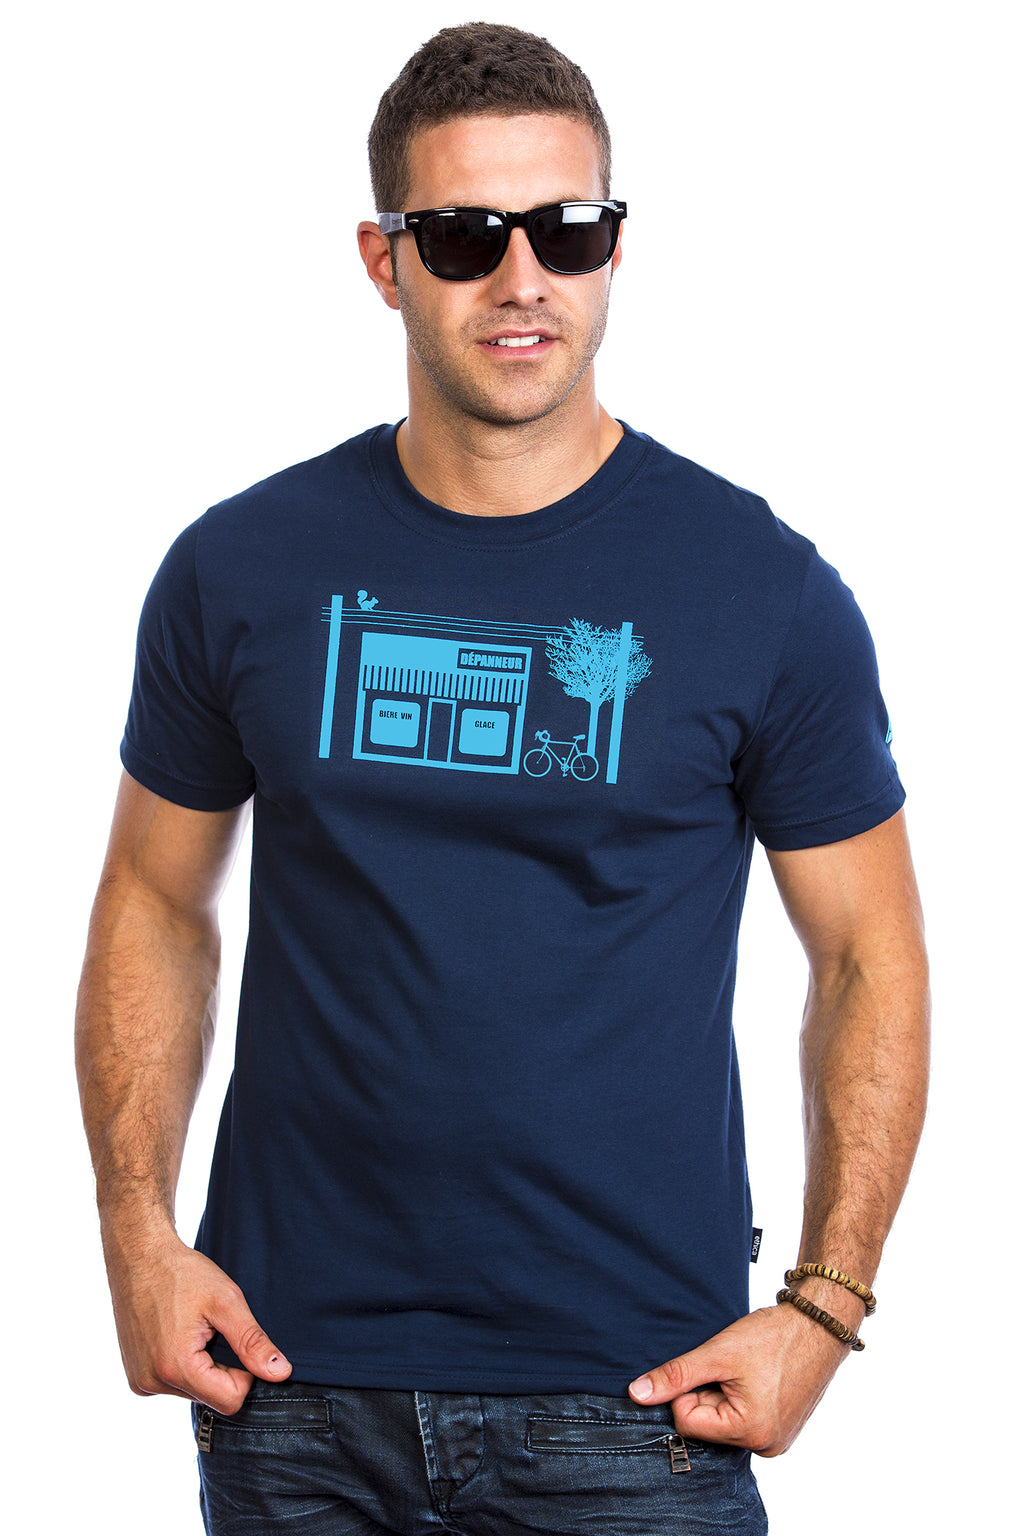 Men's Depanneur T-shirt - Organic cotton